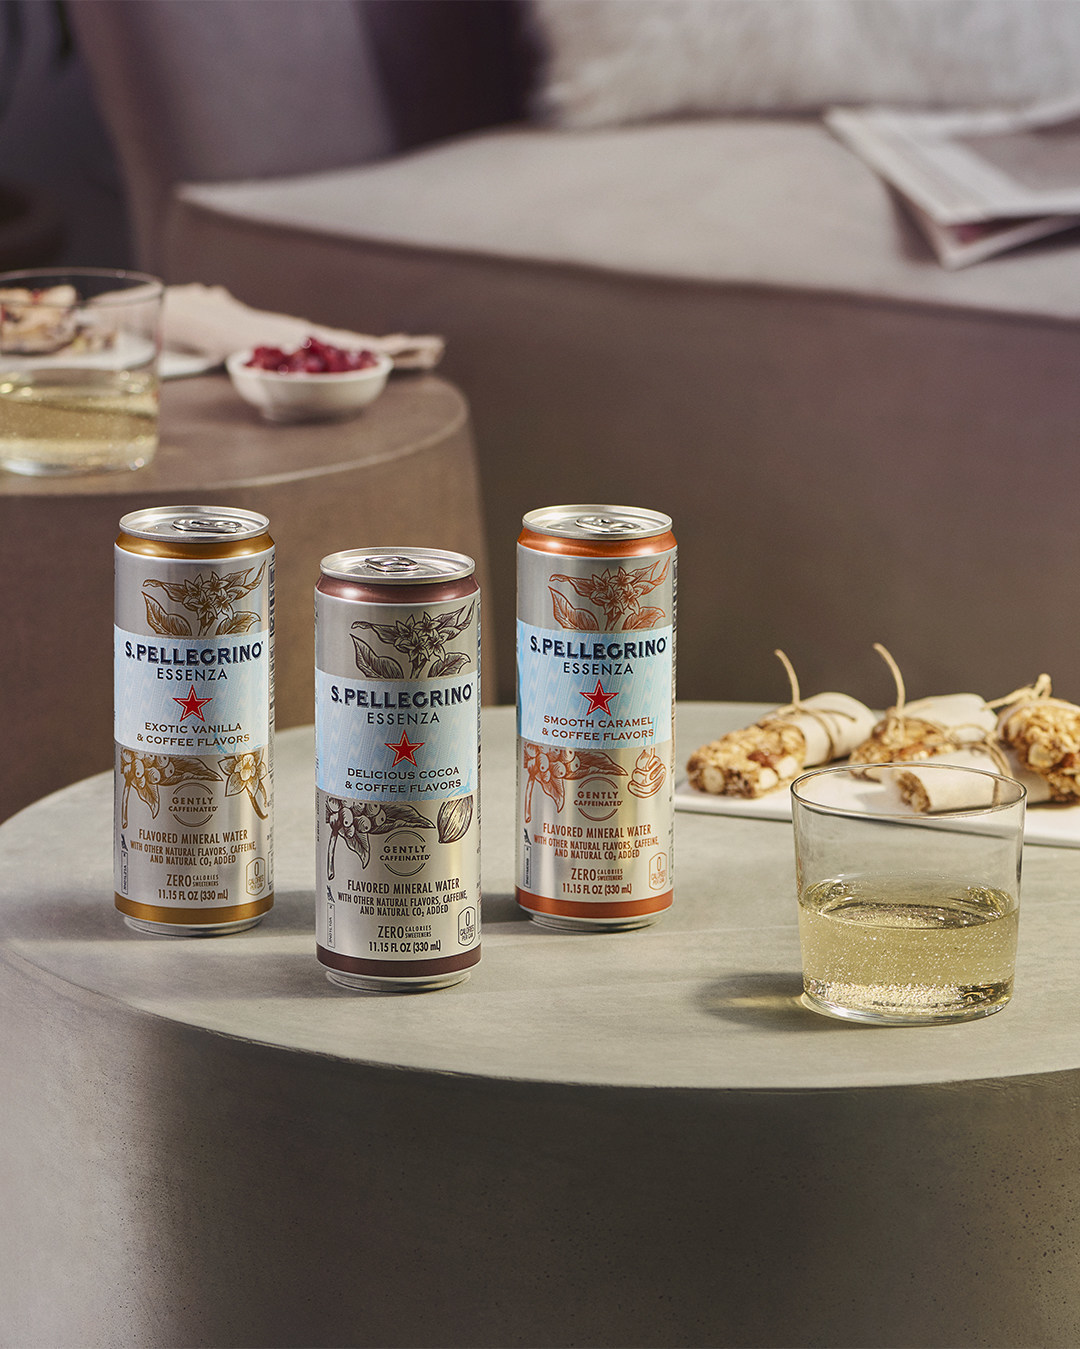 Elevate The Breaks In Your Day With The New S.Pellegrino® Essenza Line Of Coffee-Inspired Flavors   PR Newswire